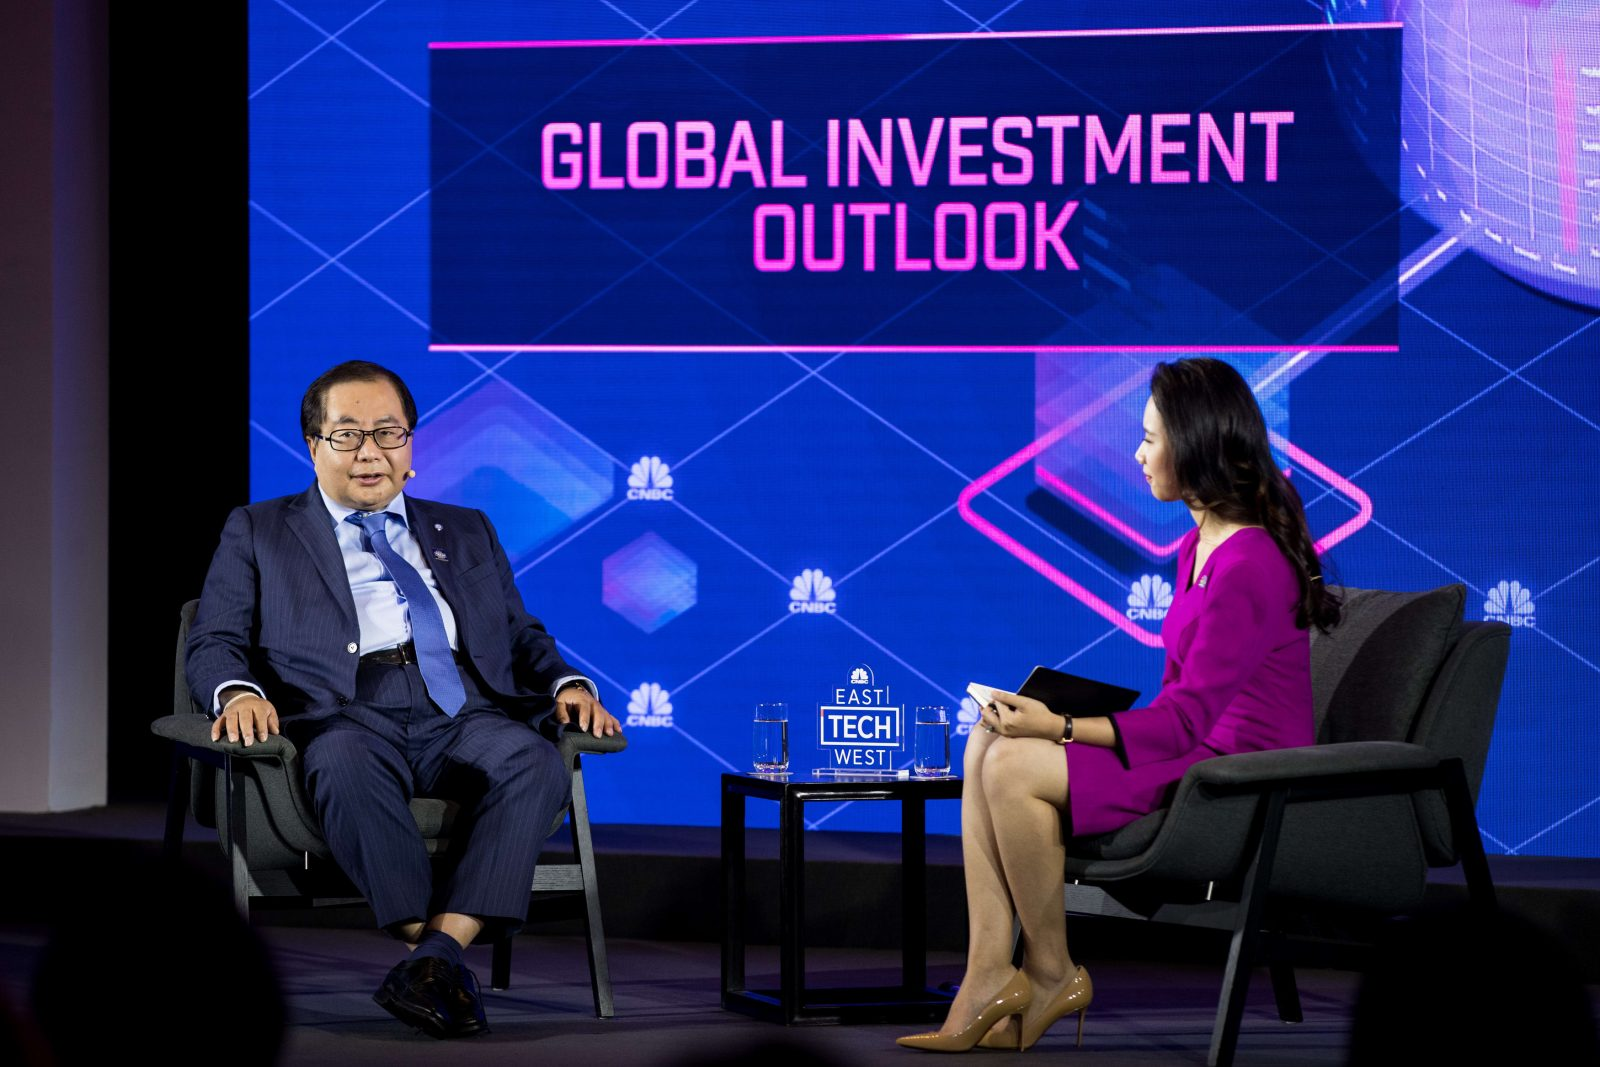 China's Greater Bay Area still has opportunities amid political unrest, slowing economy